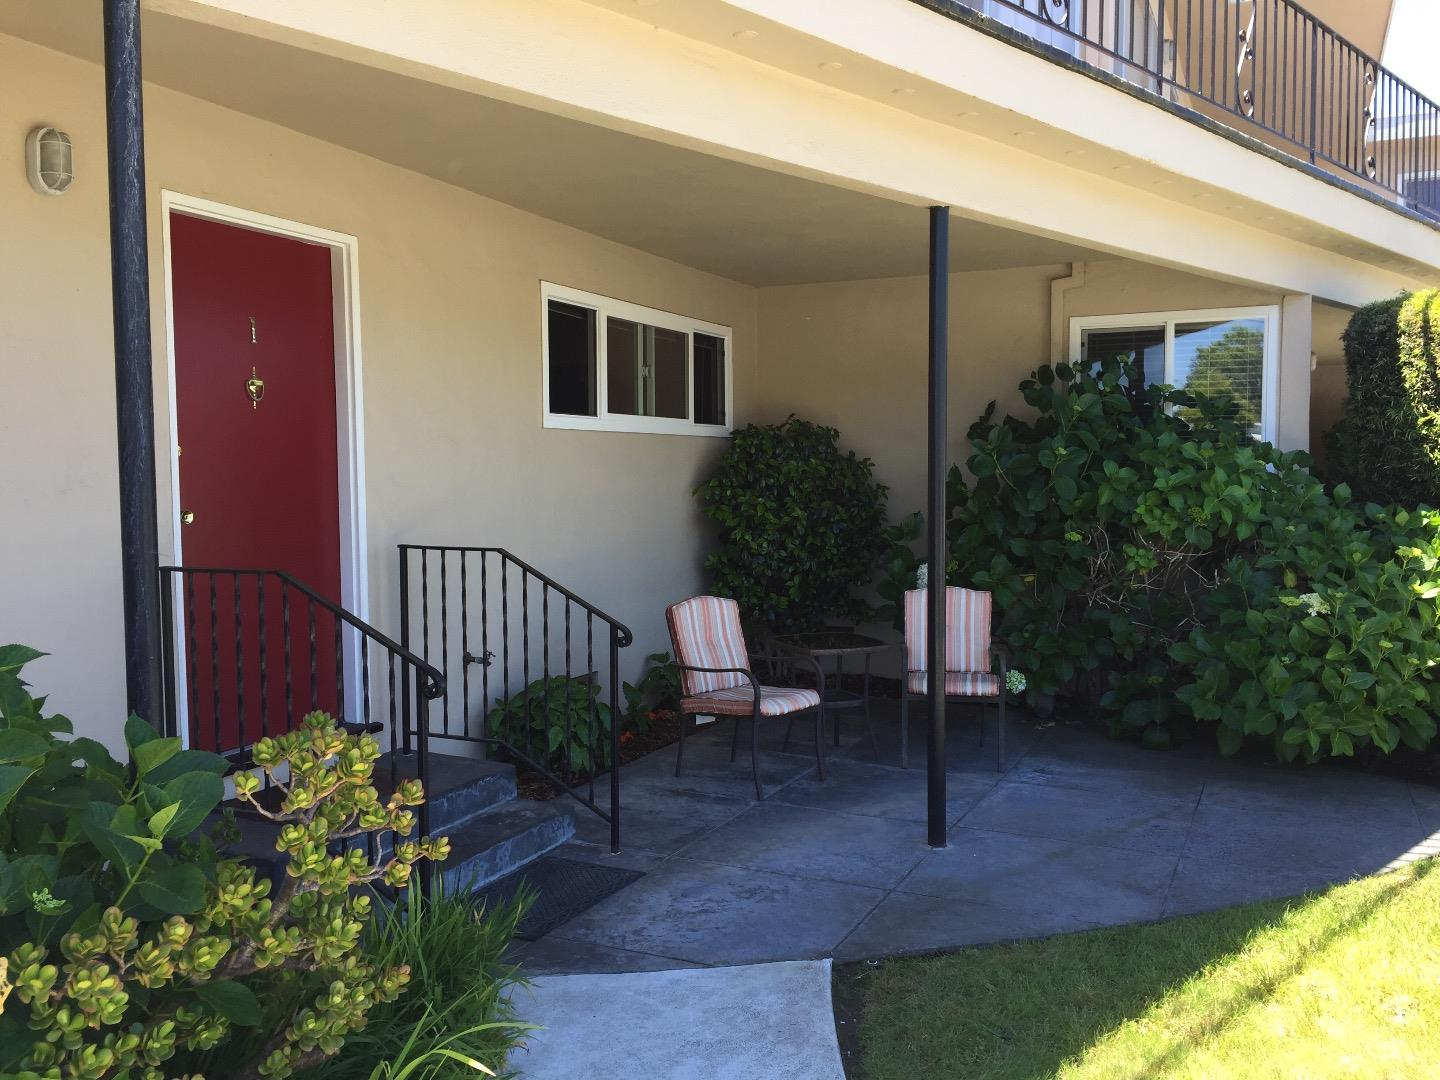 Condominium for Sale at 911 38th Avenue Santa Cruz, California 95062 United States